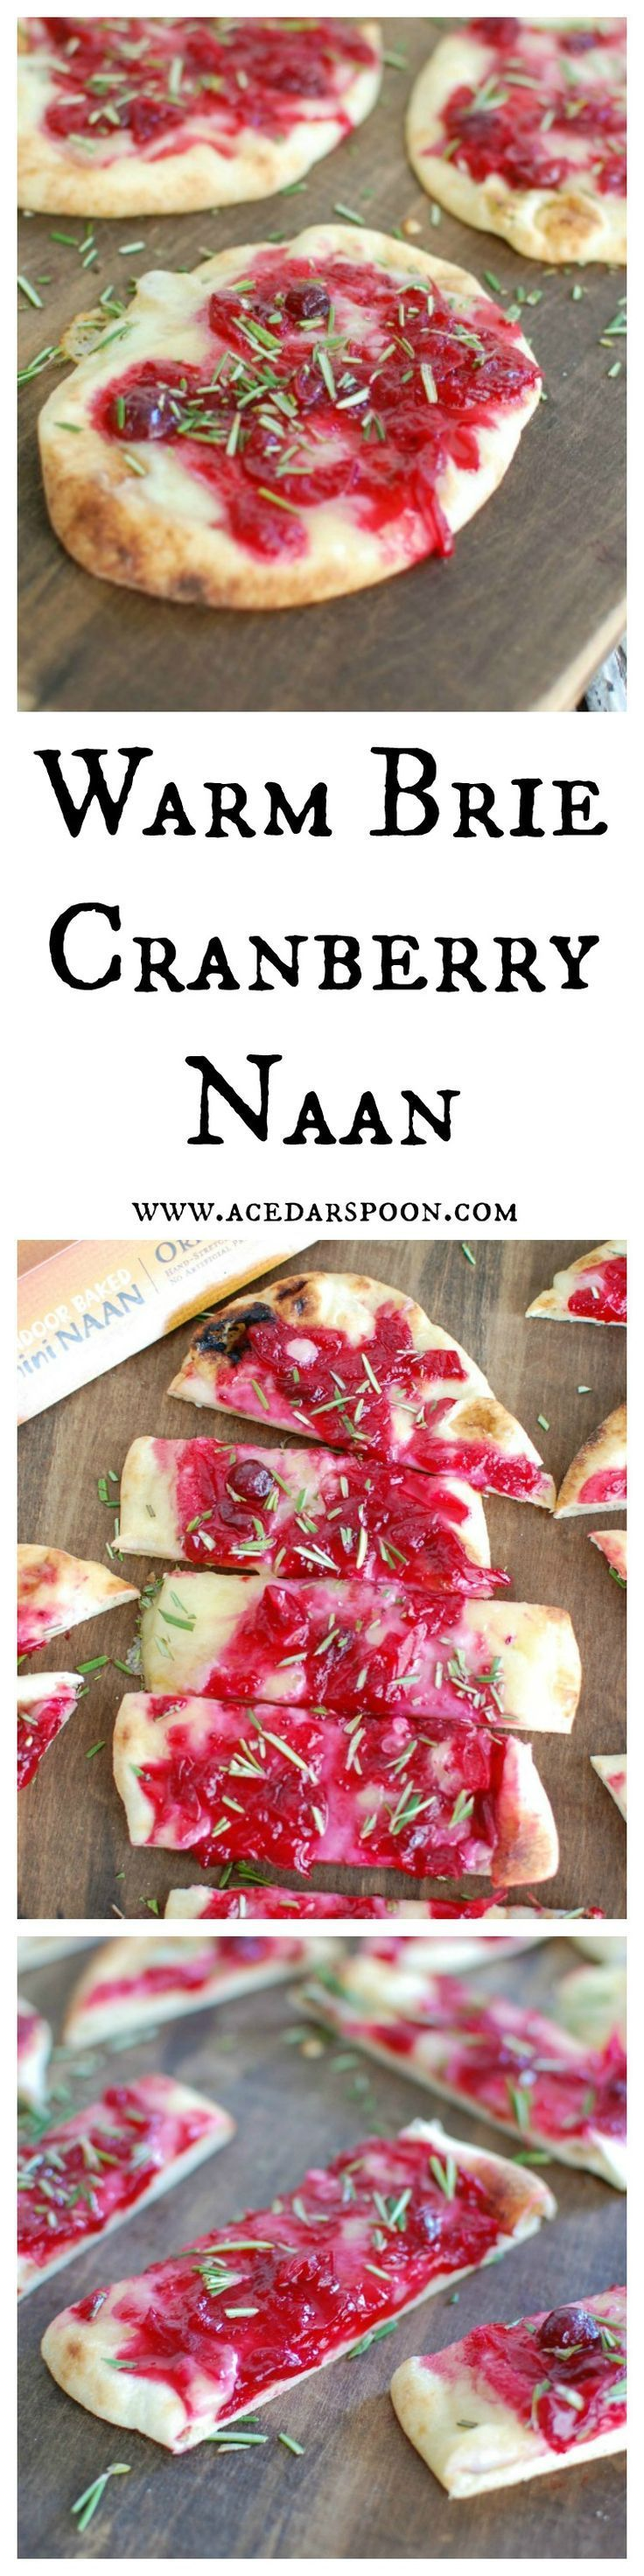 Warm Brie Cranberry Naan is a festive, naan-traditional holiday appetizer. Mini naan bread is topped with warm, creamy brie cheese, a sweet cranberry sauce, and finished off with freshly chopped rosemary. // A Cedar Spoon AD